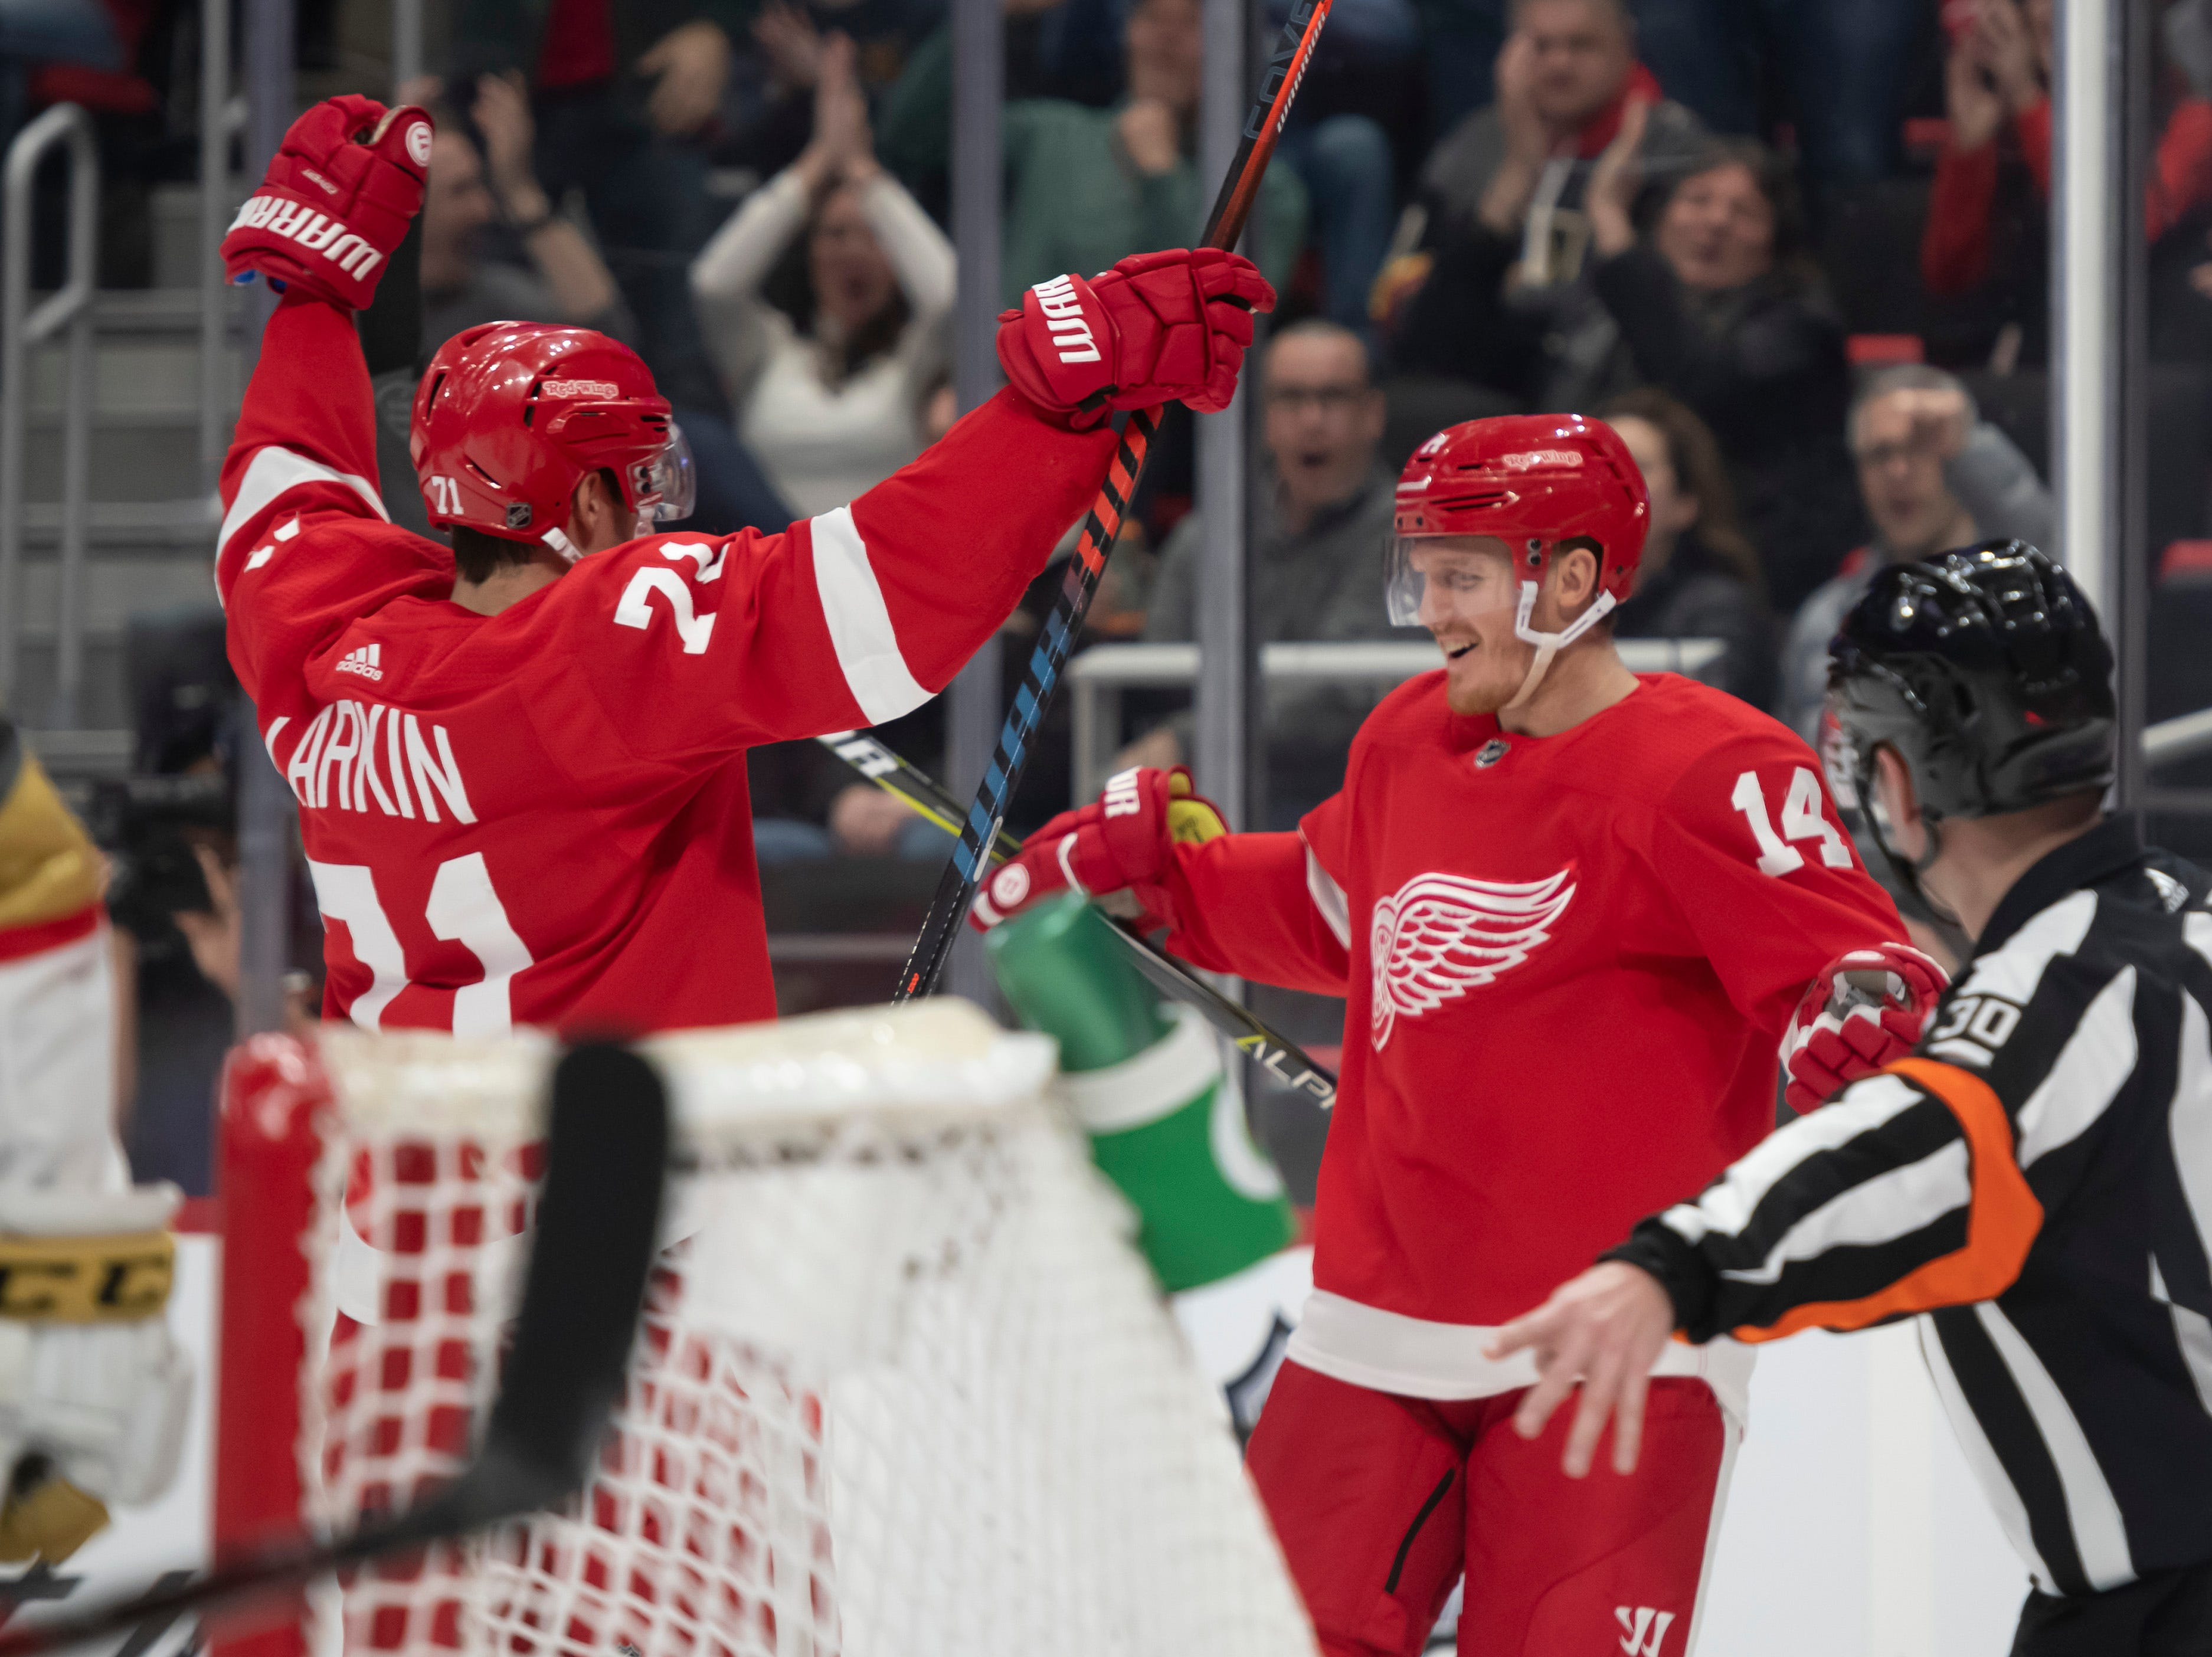 Detroit center Dylan Larkin, left, celebrates with center Gustav Nyquist after Nyquist scored in the first period.